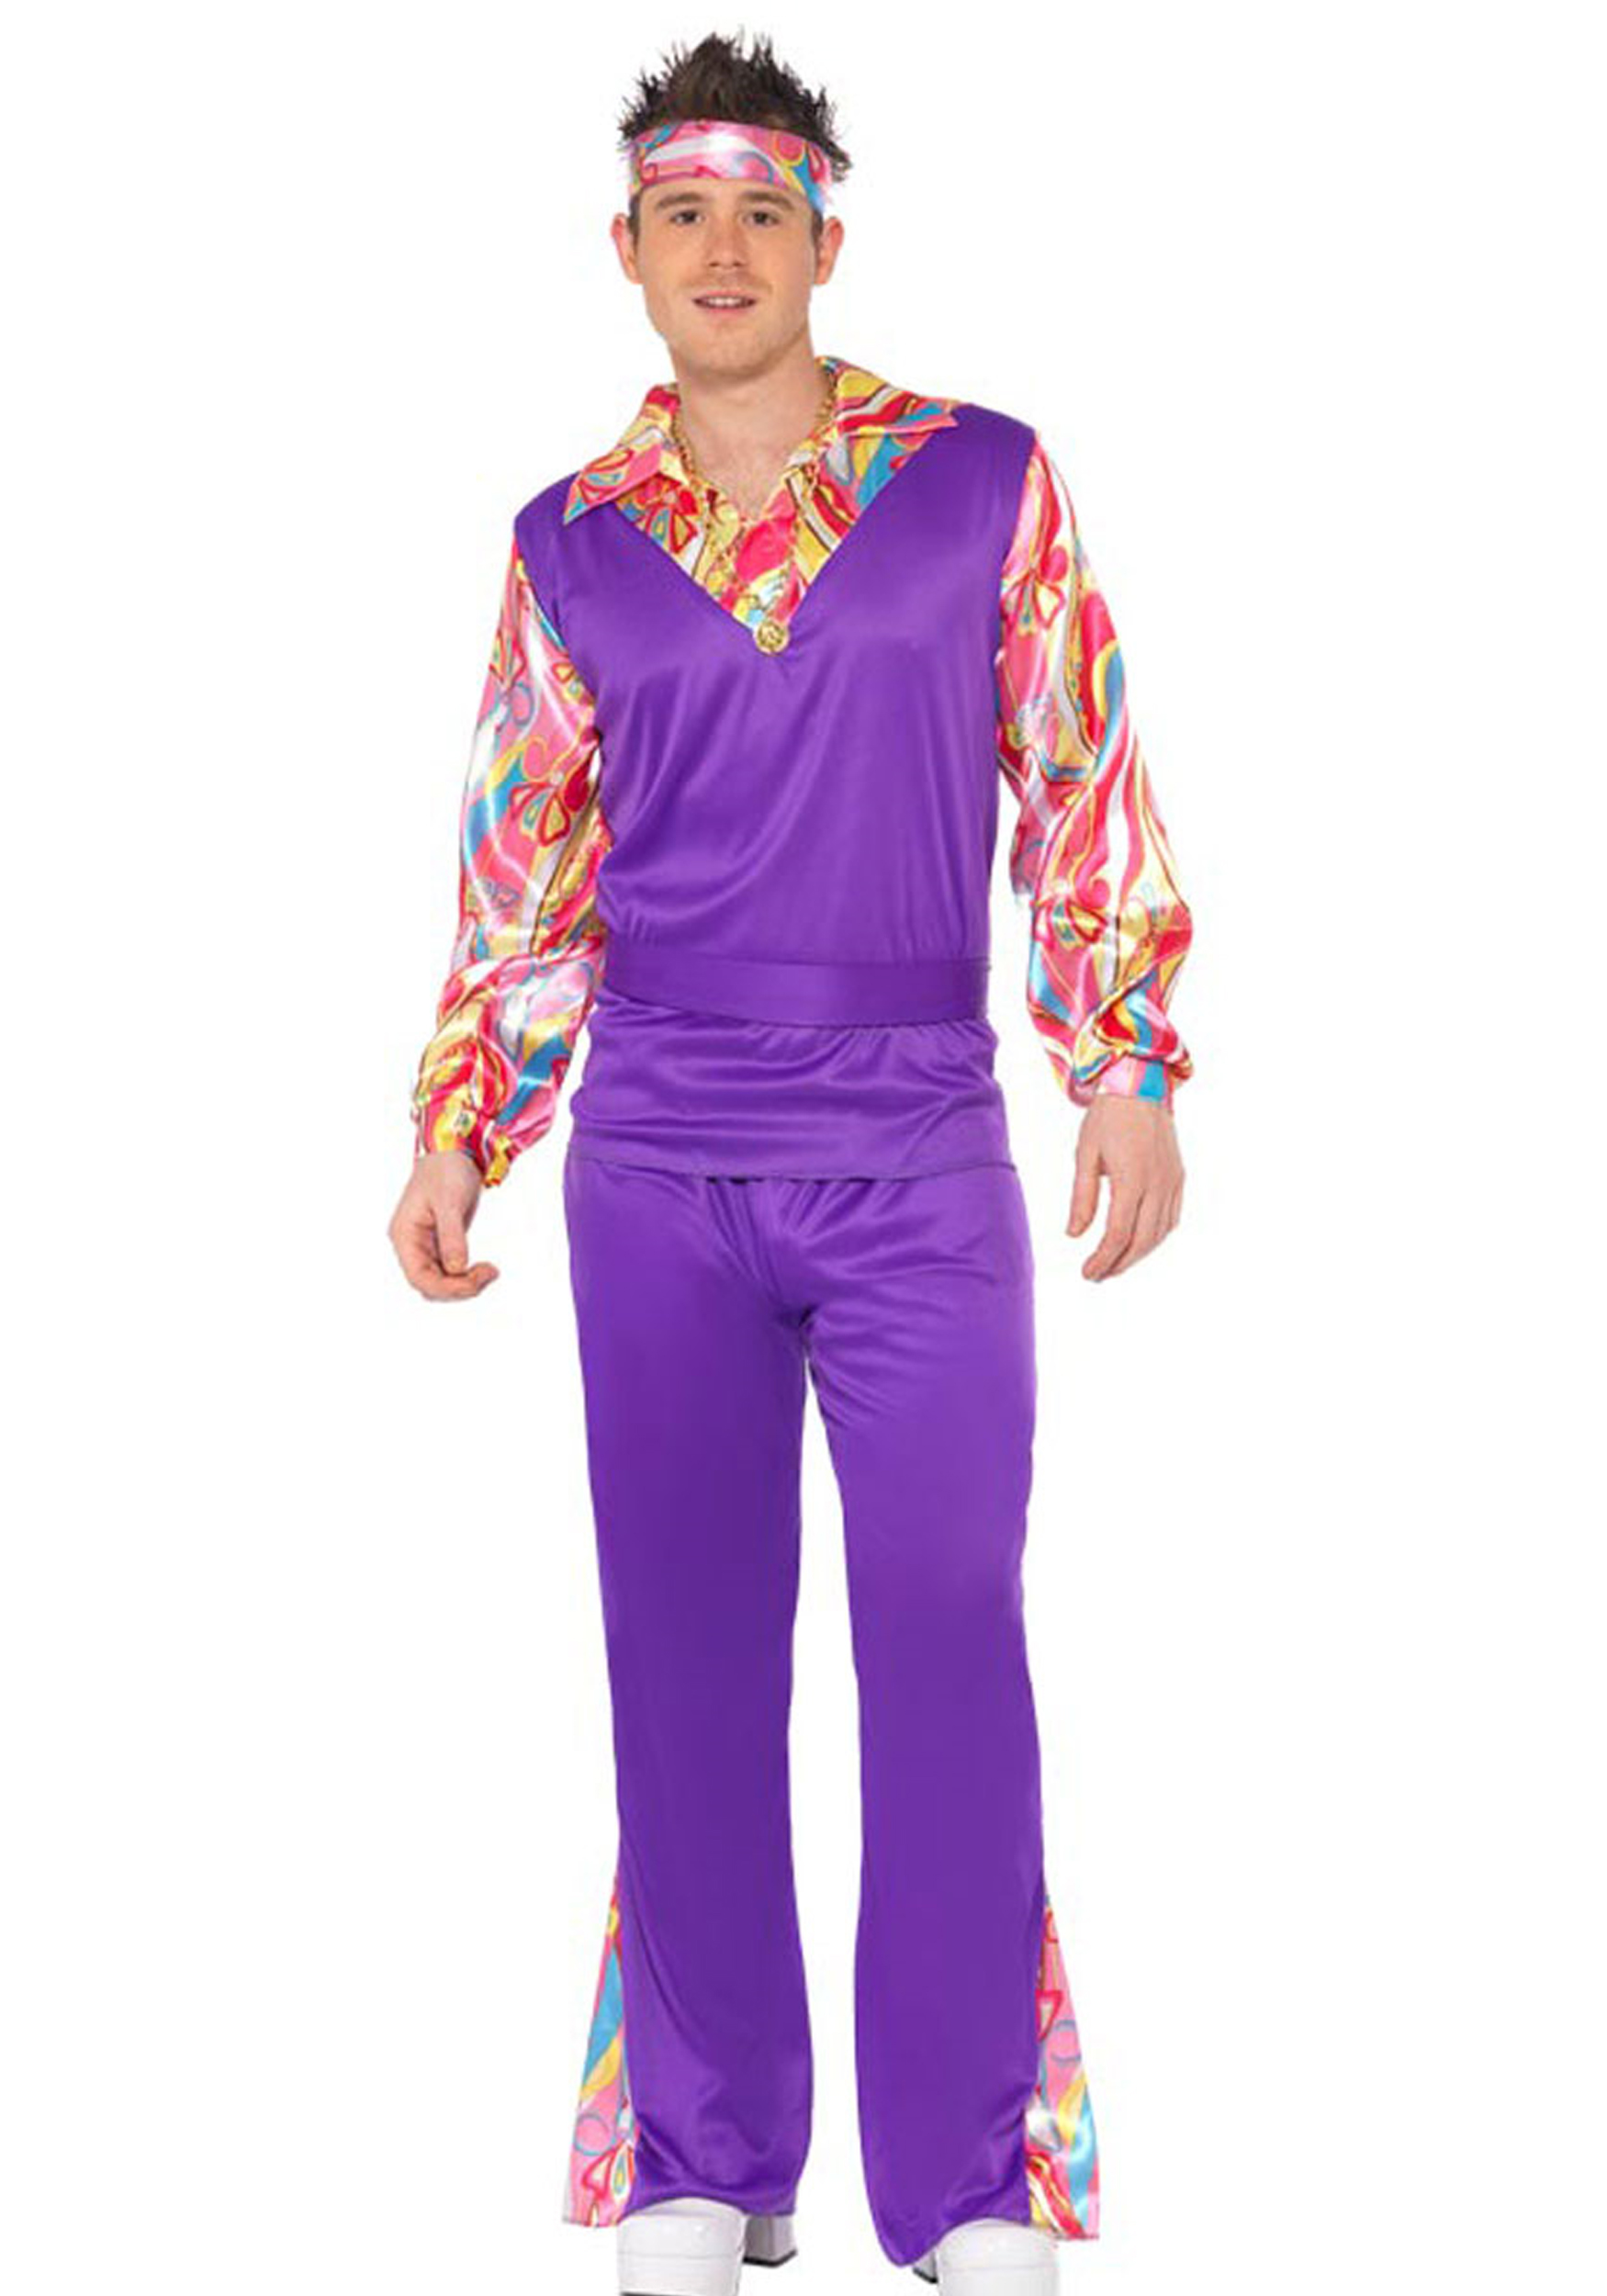 765715ee90a2 Costume uomo Hippy Anni 70 psichedelico - CarnivalHalloween.com